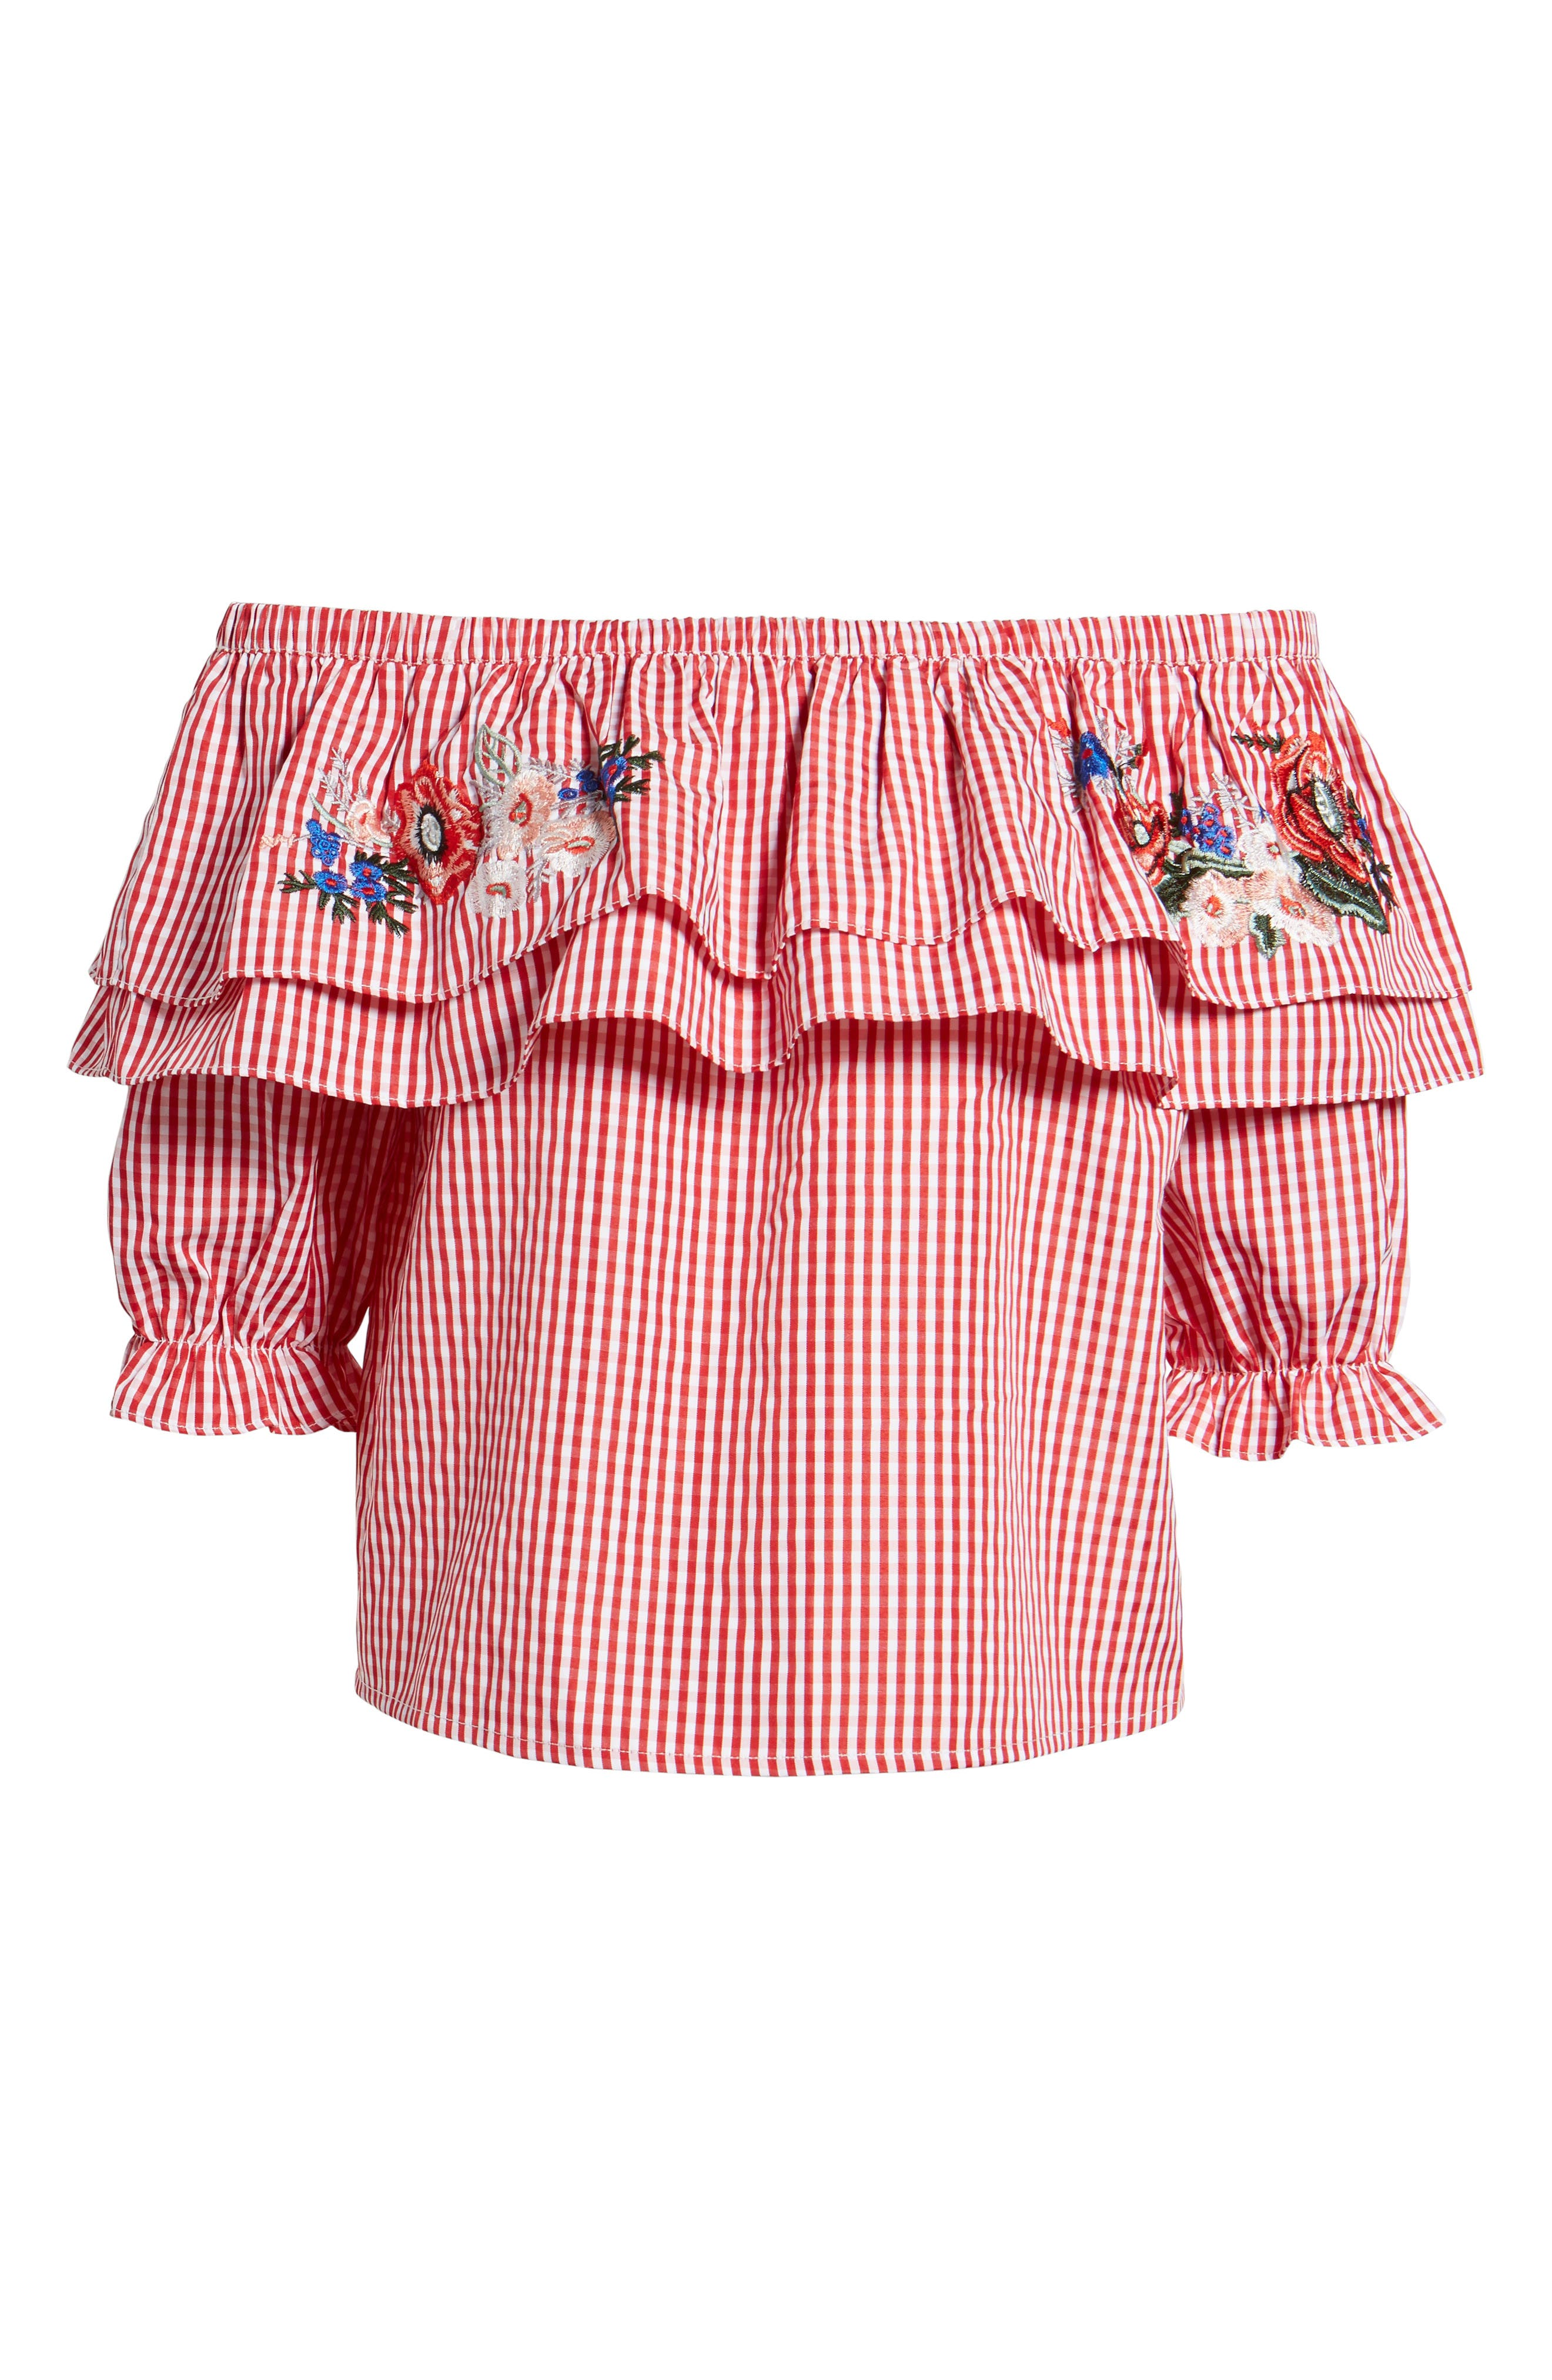 Embroidered Gingham Off the Shoulder Top,                             Alternate thumbnail 6, color,                             640